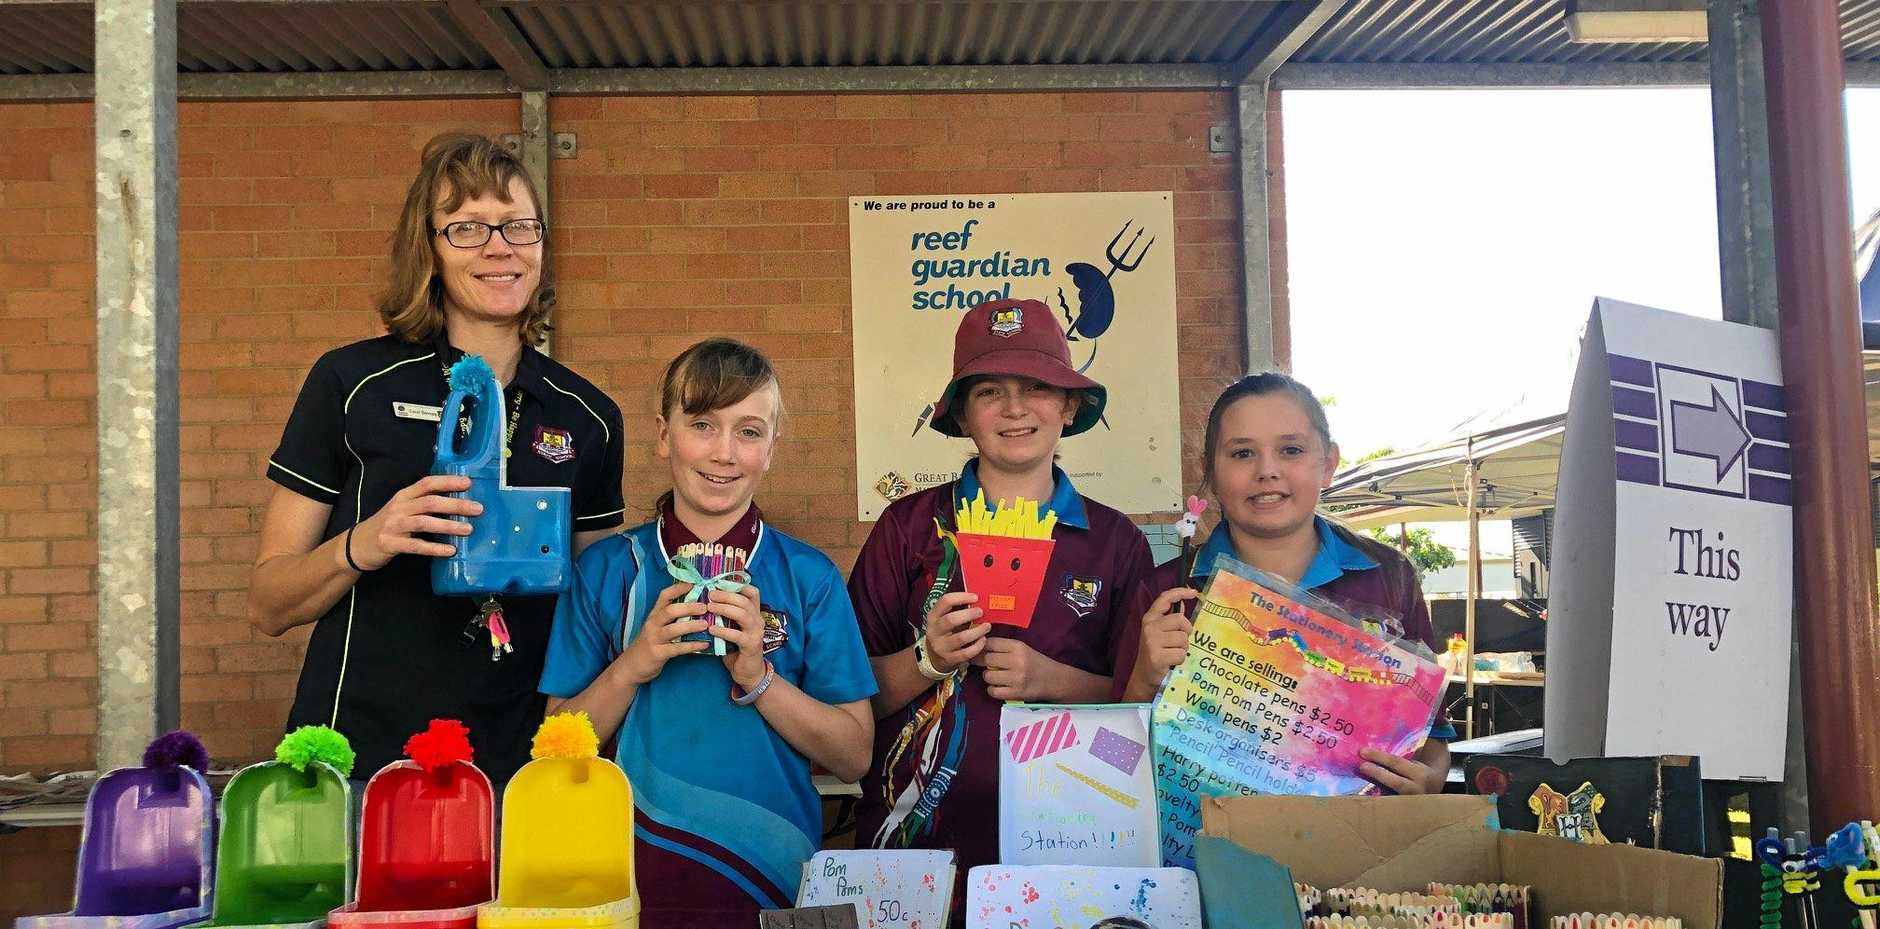 Gladstone Central State School teacher Carol Devney with students Jolene Devney, Caitlin Price and Tegan Albeck at the earlypreneur markets on election day 2019.